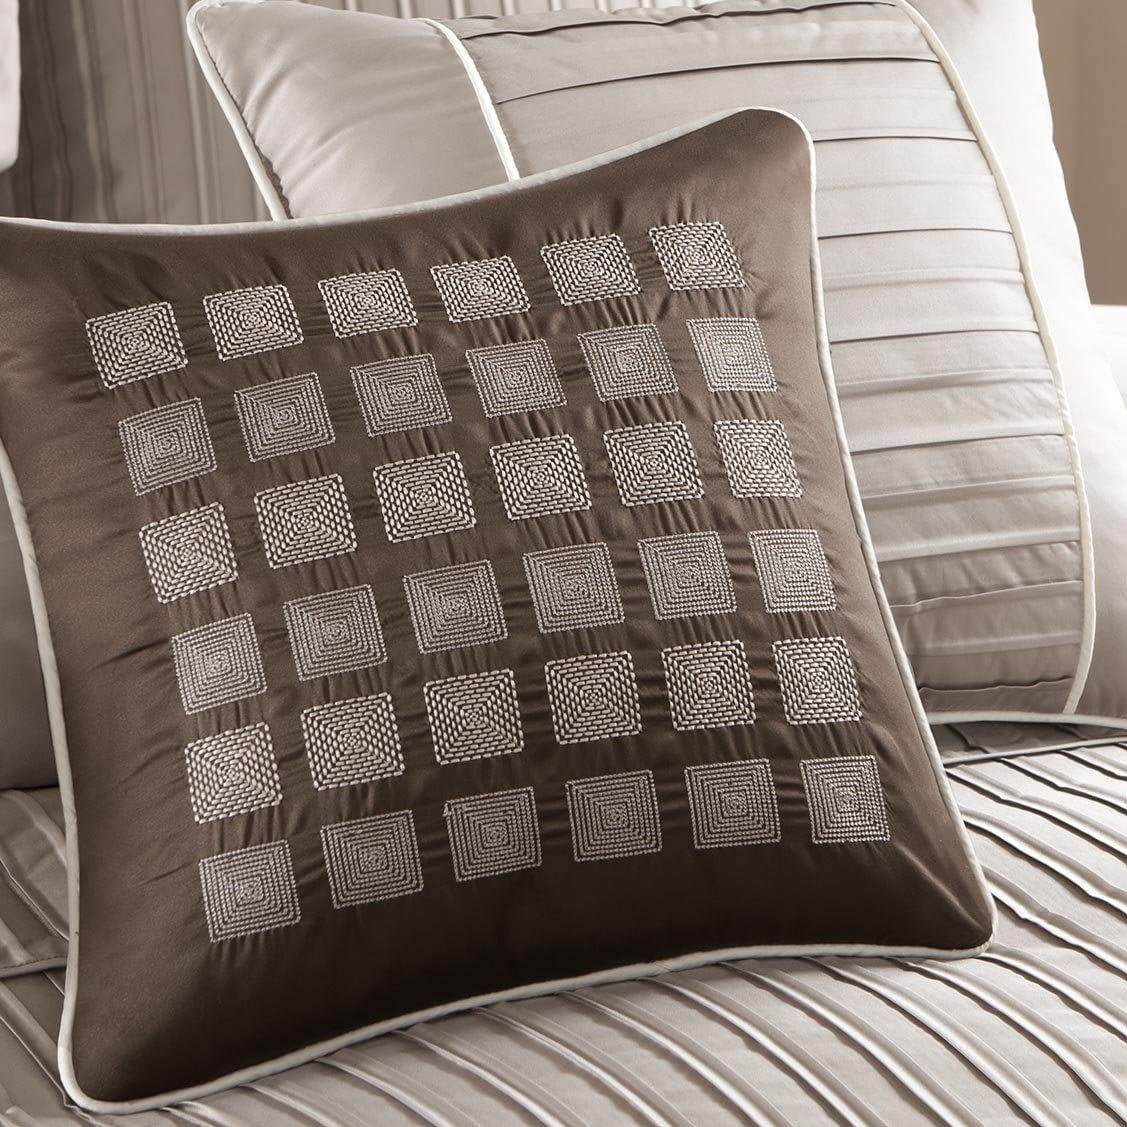 6pc Tan Taupe /& Brown Microsuede Duvet Cover Bedding Set AND Decorative Pillows